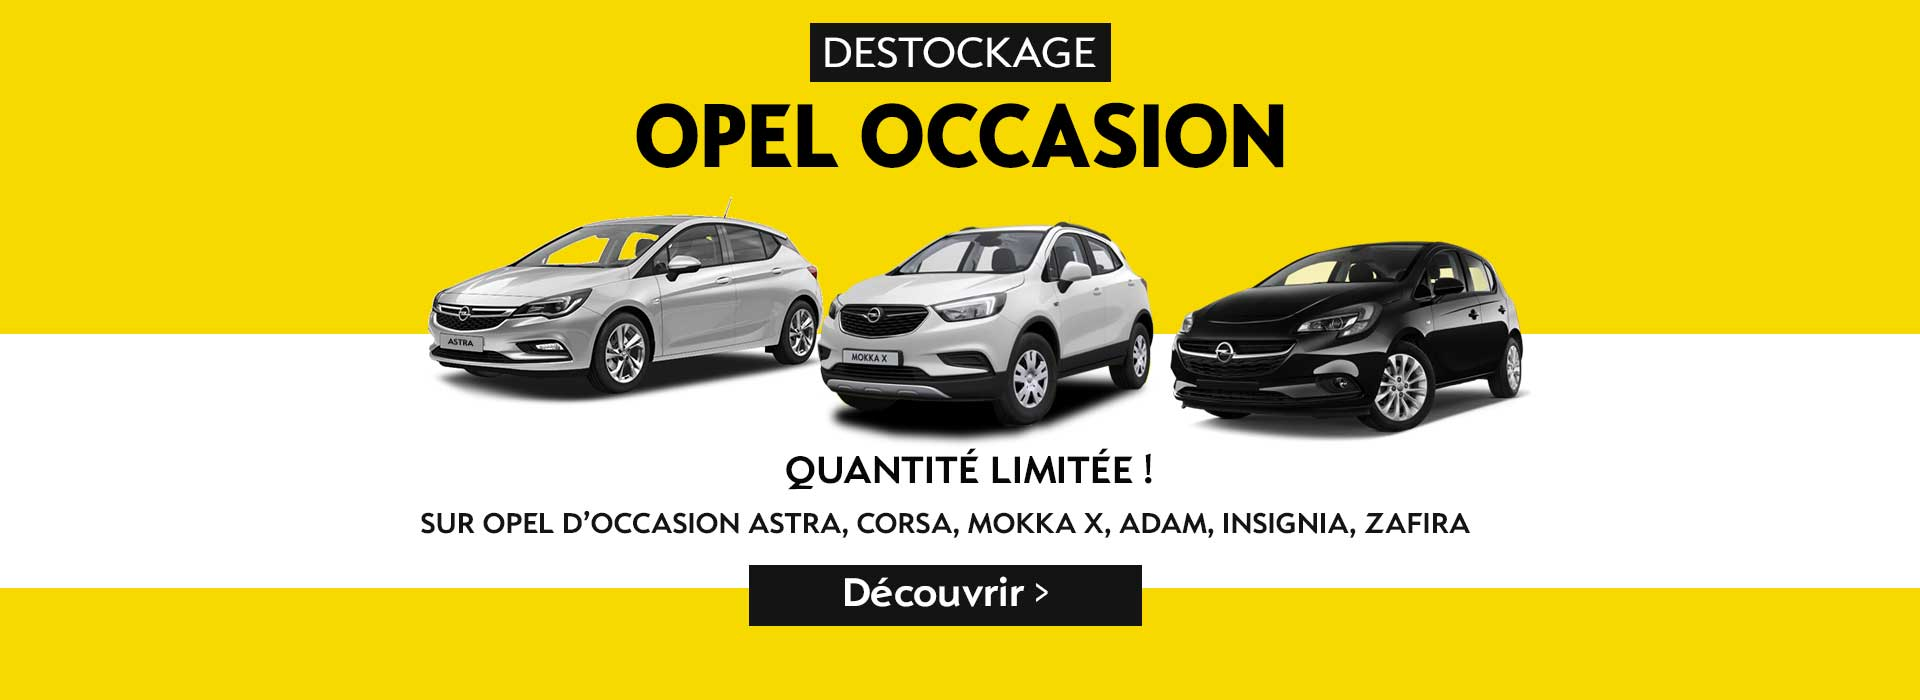 opel besancon vente voiture neuve vehicule occasion. Black Bedroom Furniture Sets. Home Design Ideas